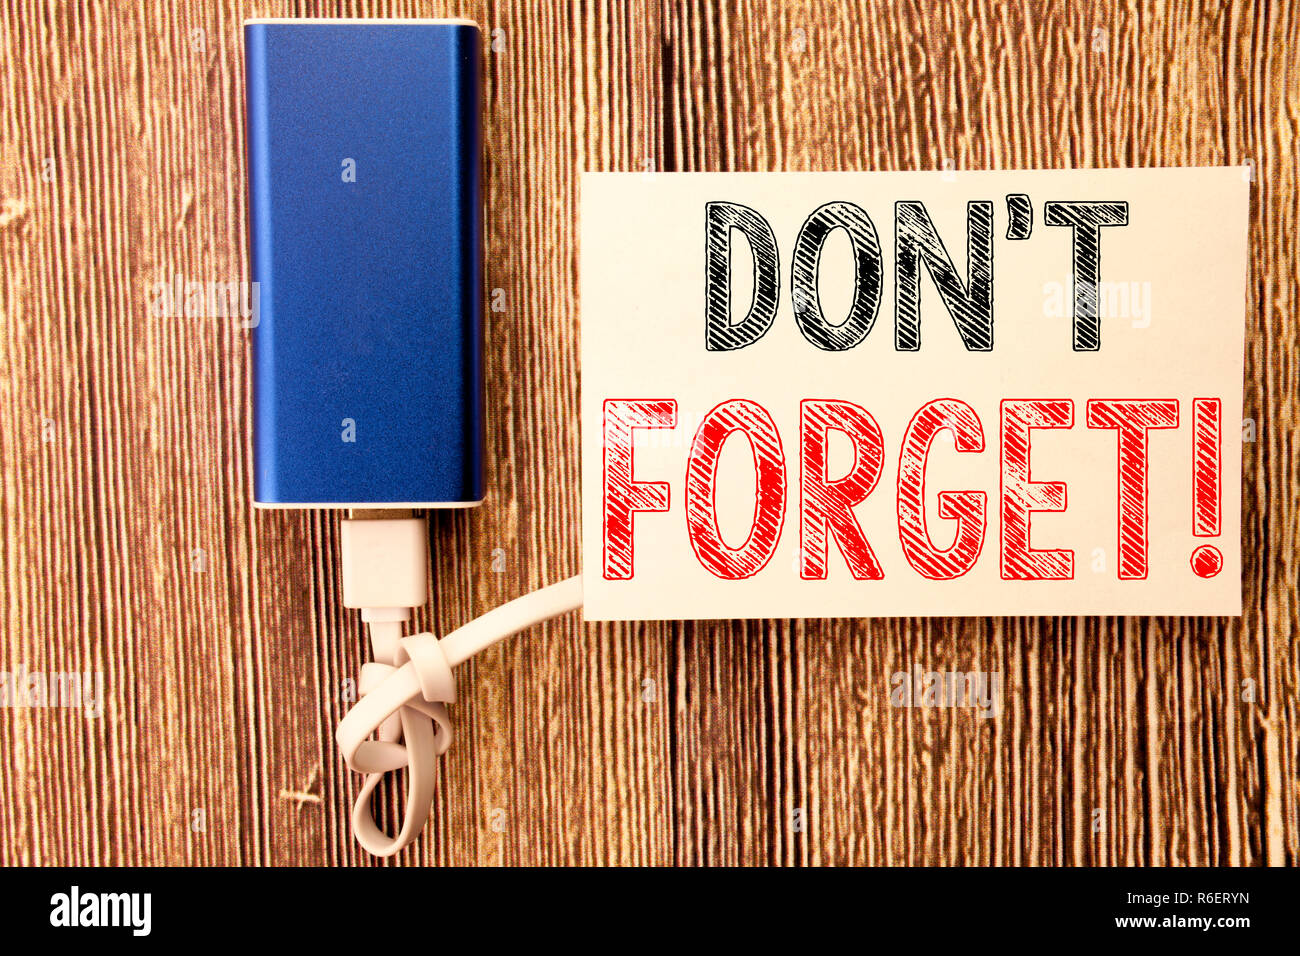 Conceptual hand writing text caption inspiration showing Do Not Forget. Business concept for Reminder Message written on sticky note old wood wooden background with power bank - Stock Image